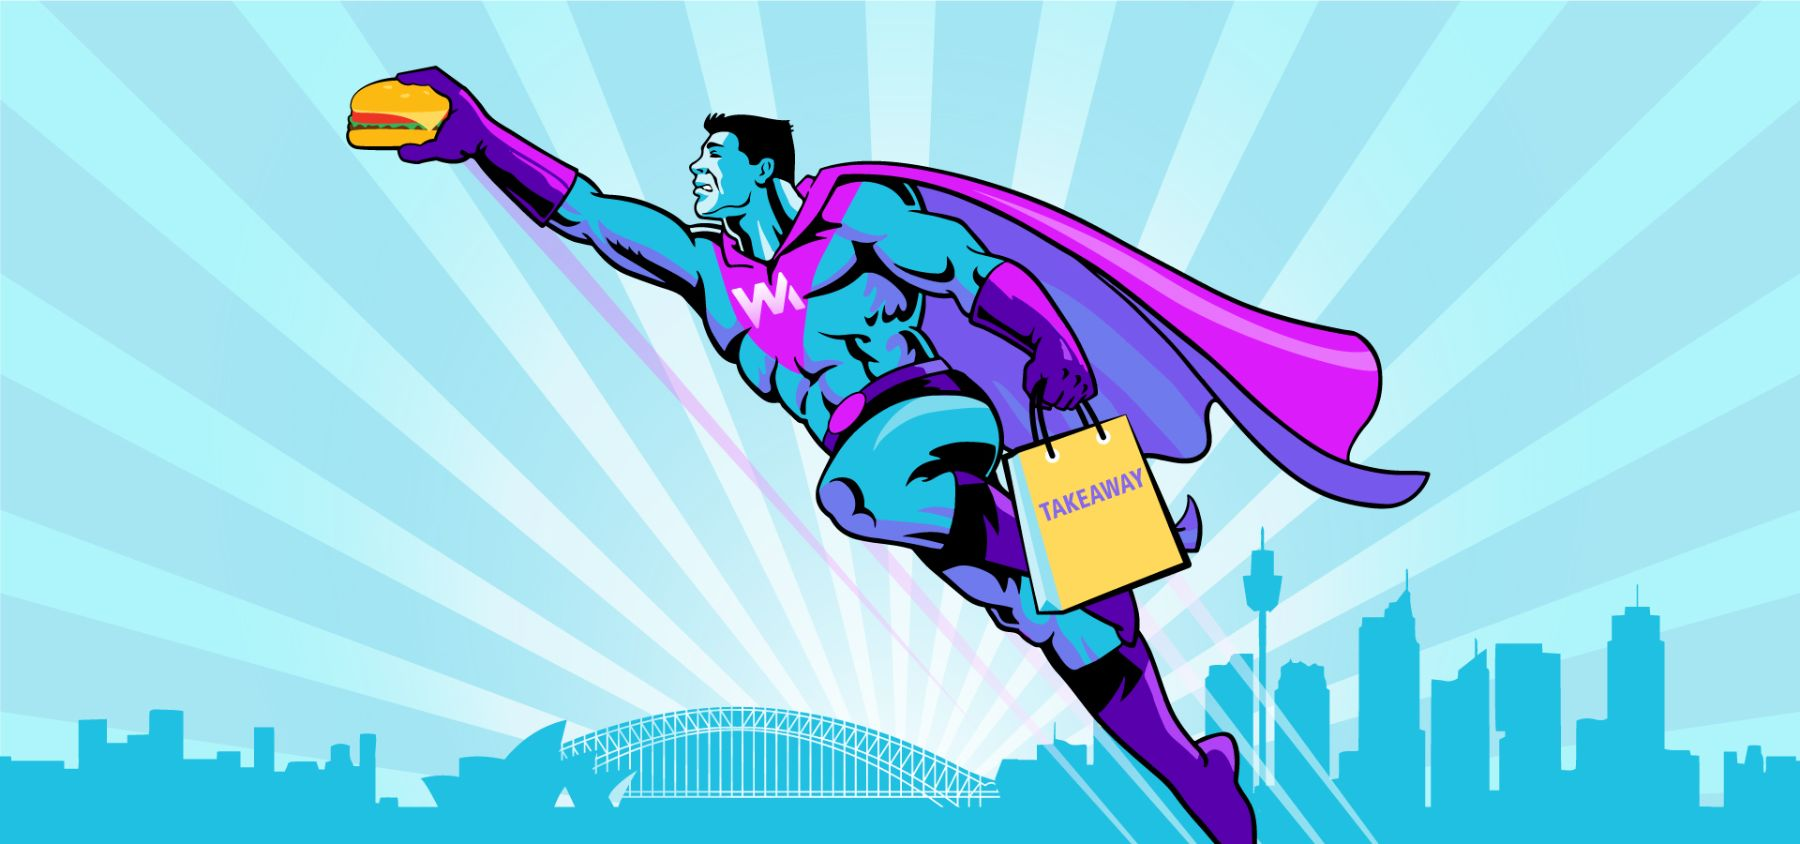 4 Ways to Become the Hospitality Superhero You Know You Are